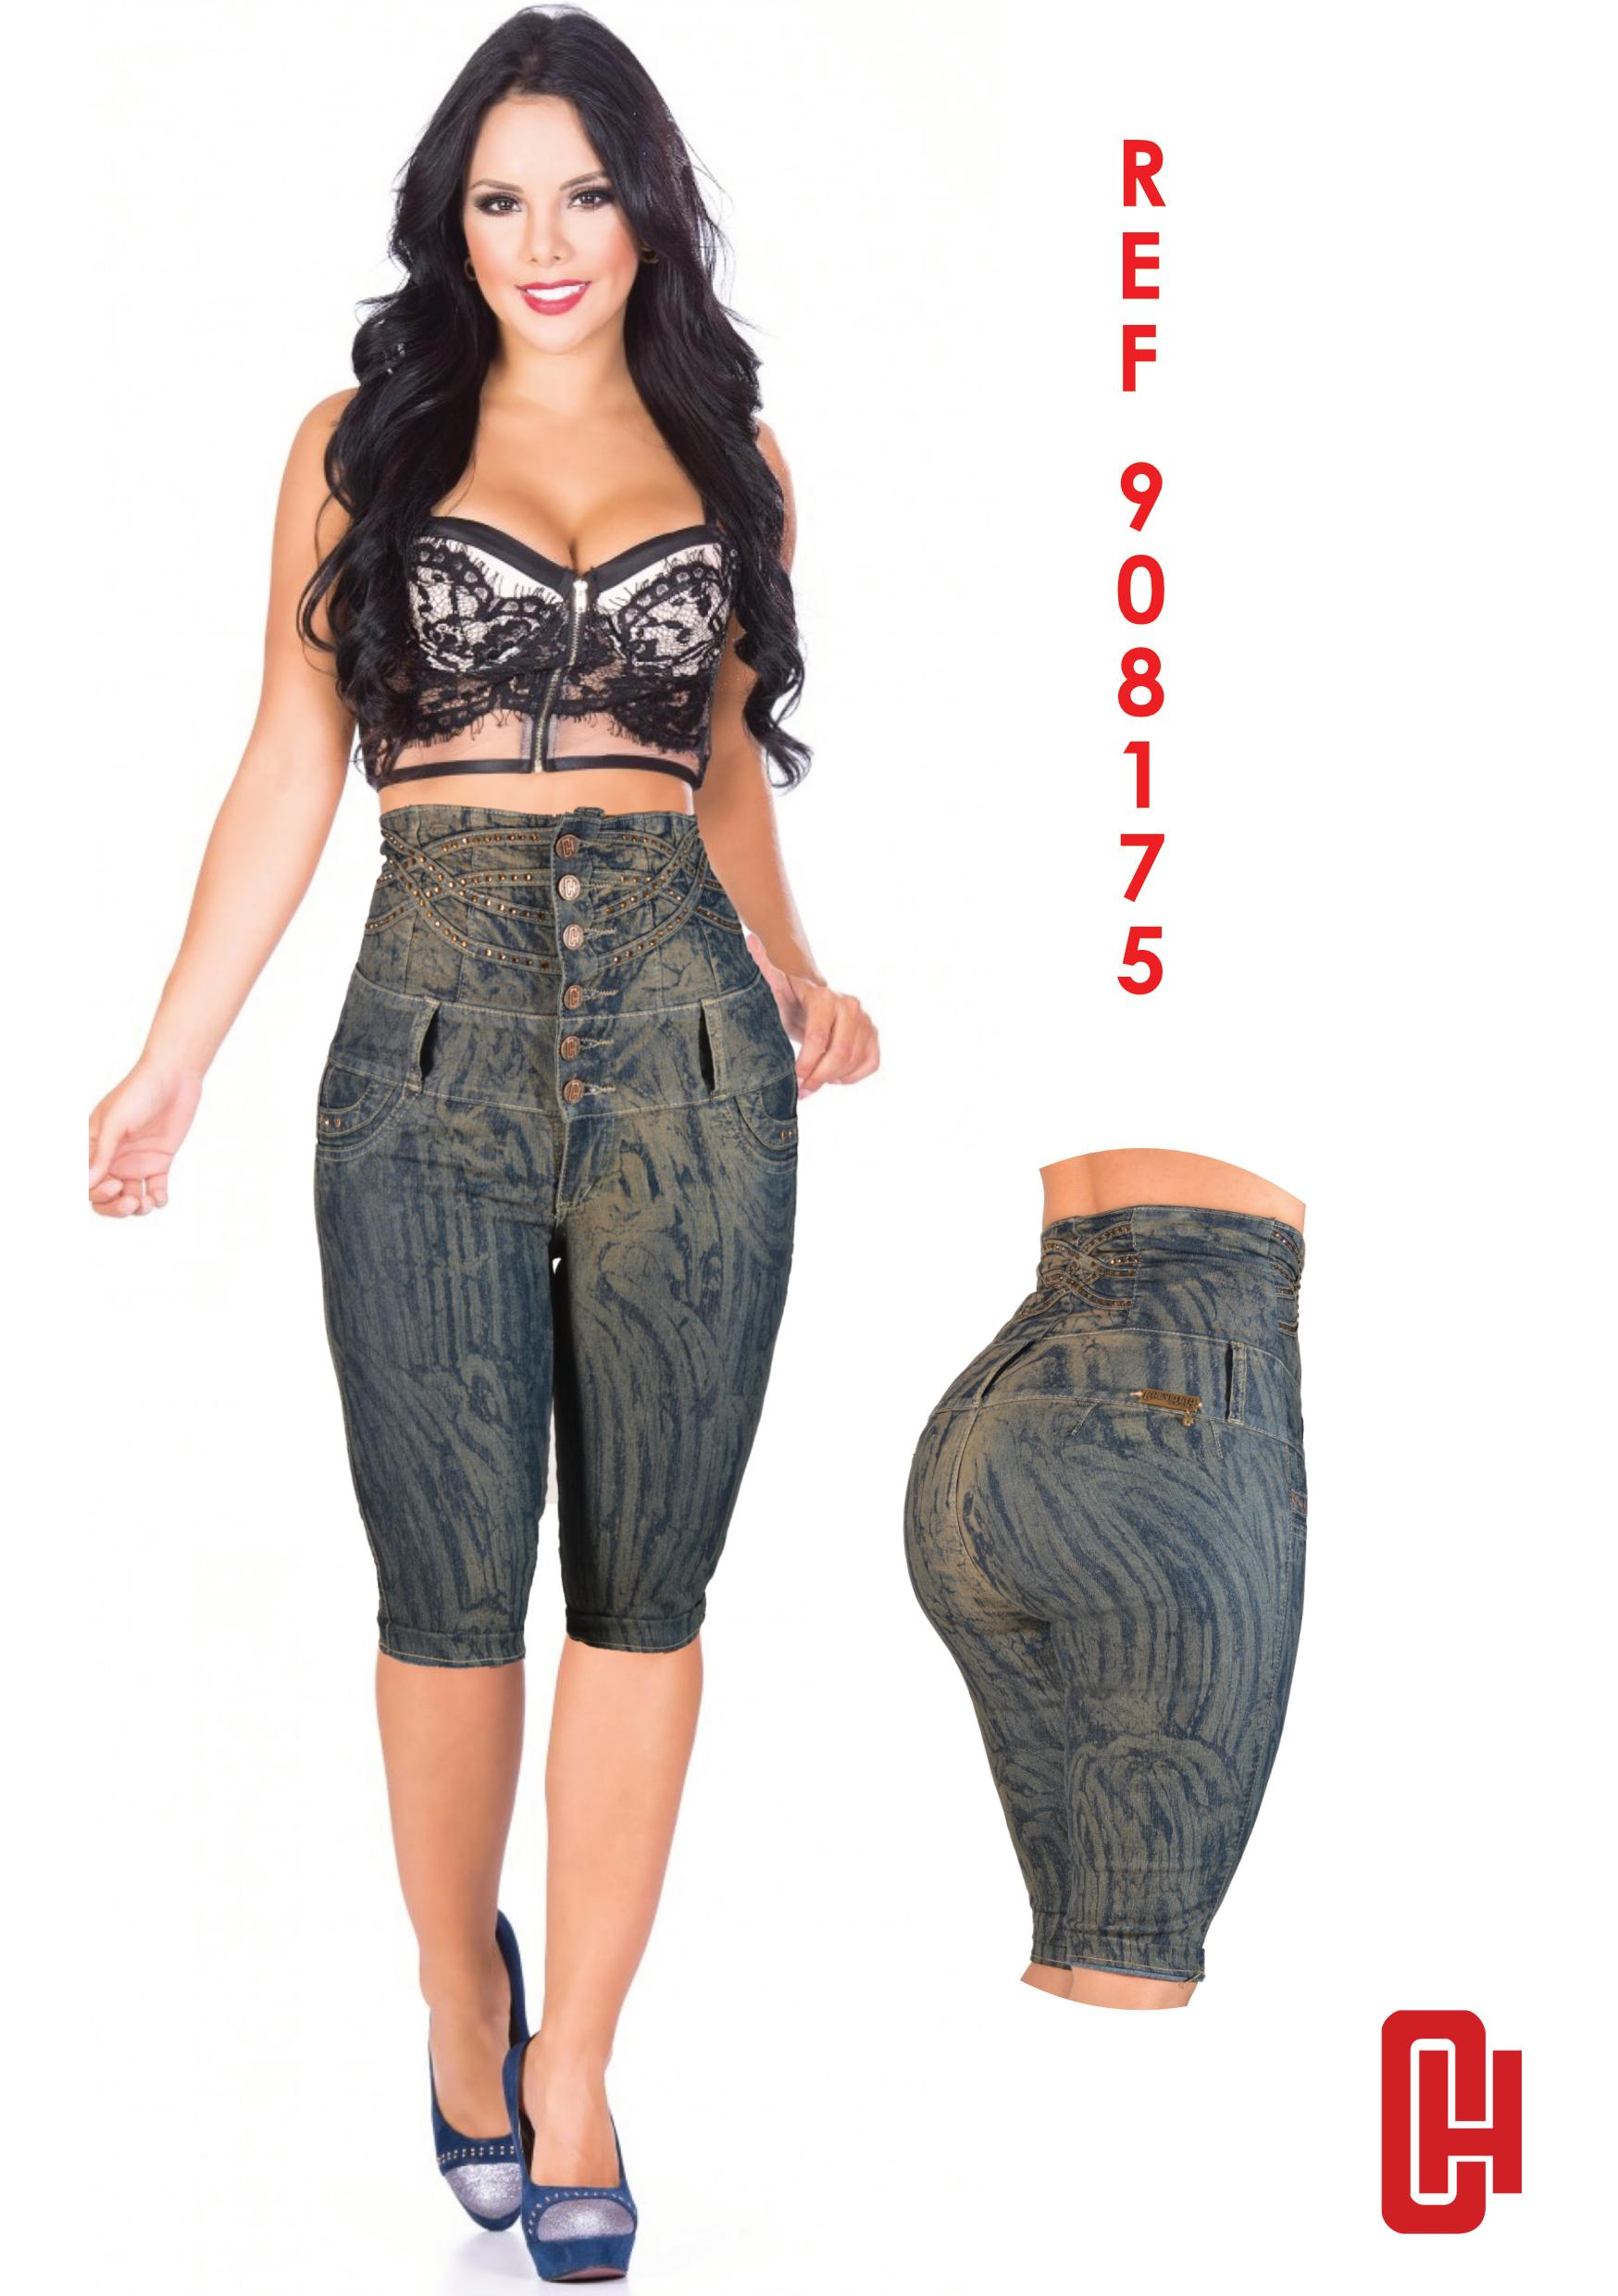 Cheviotto's high-waisted jean